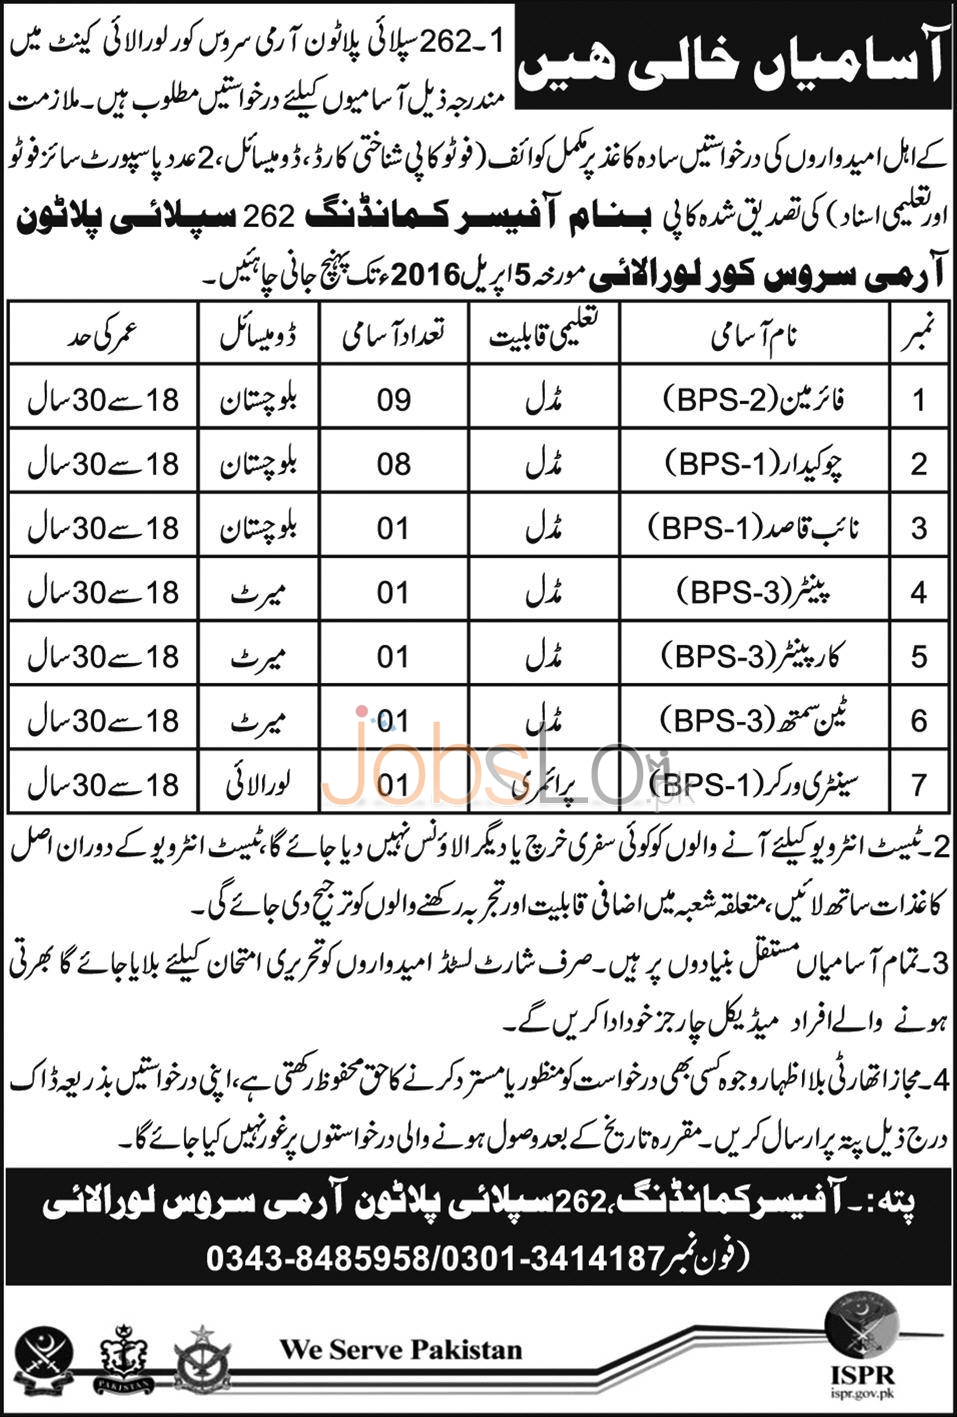 Recruitment Offers in 262 Supply Platon Army Services Core Loralai Cantt 2016 Test & Interview